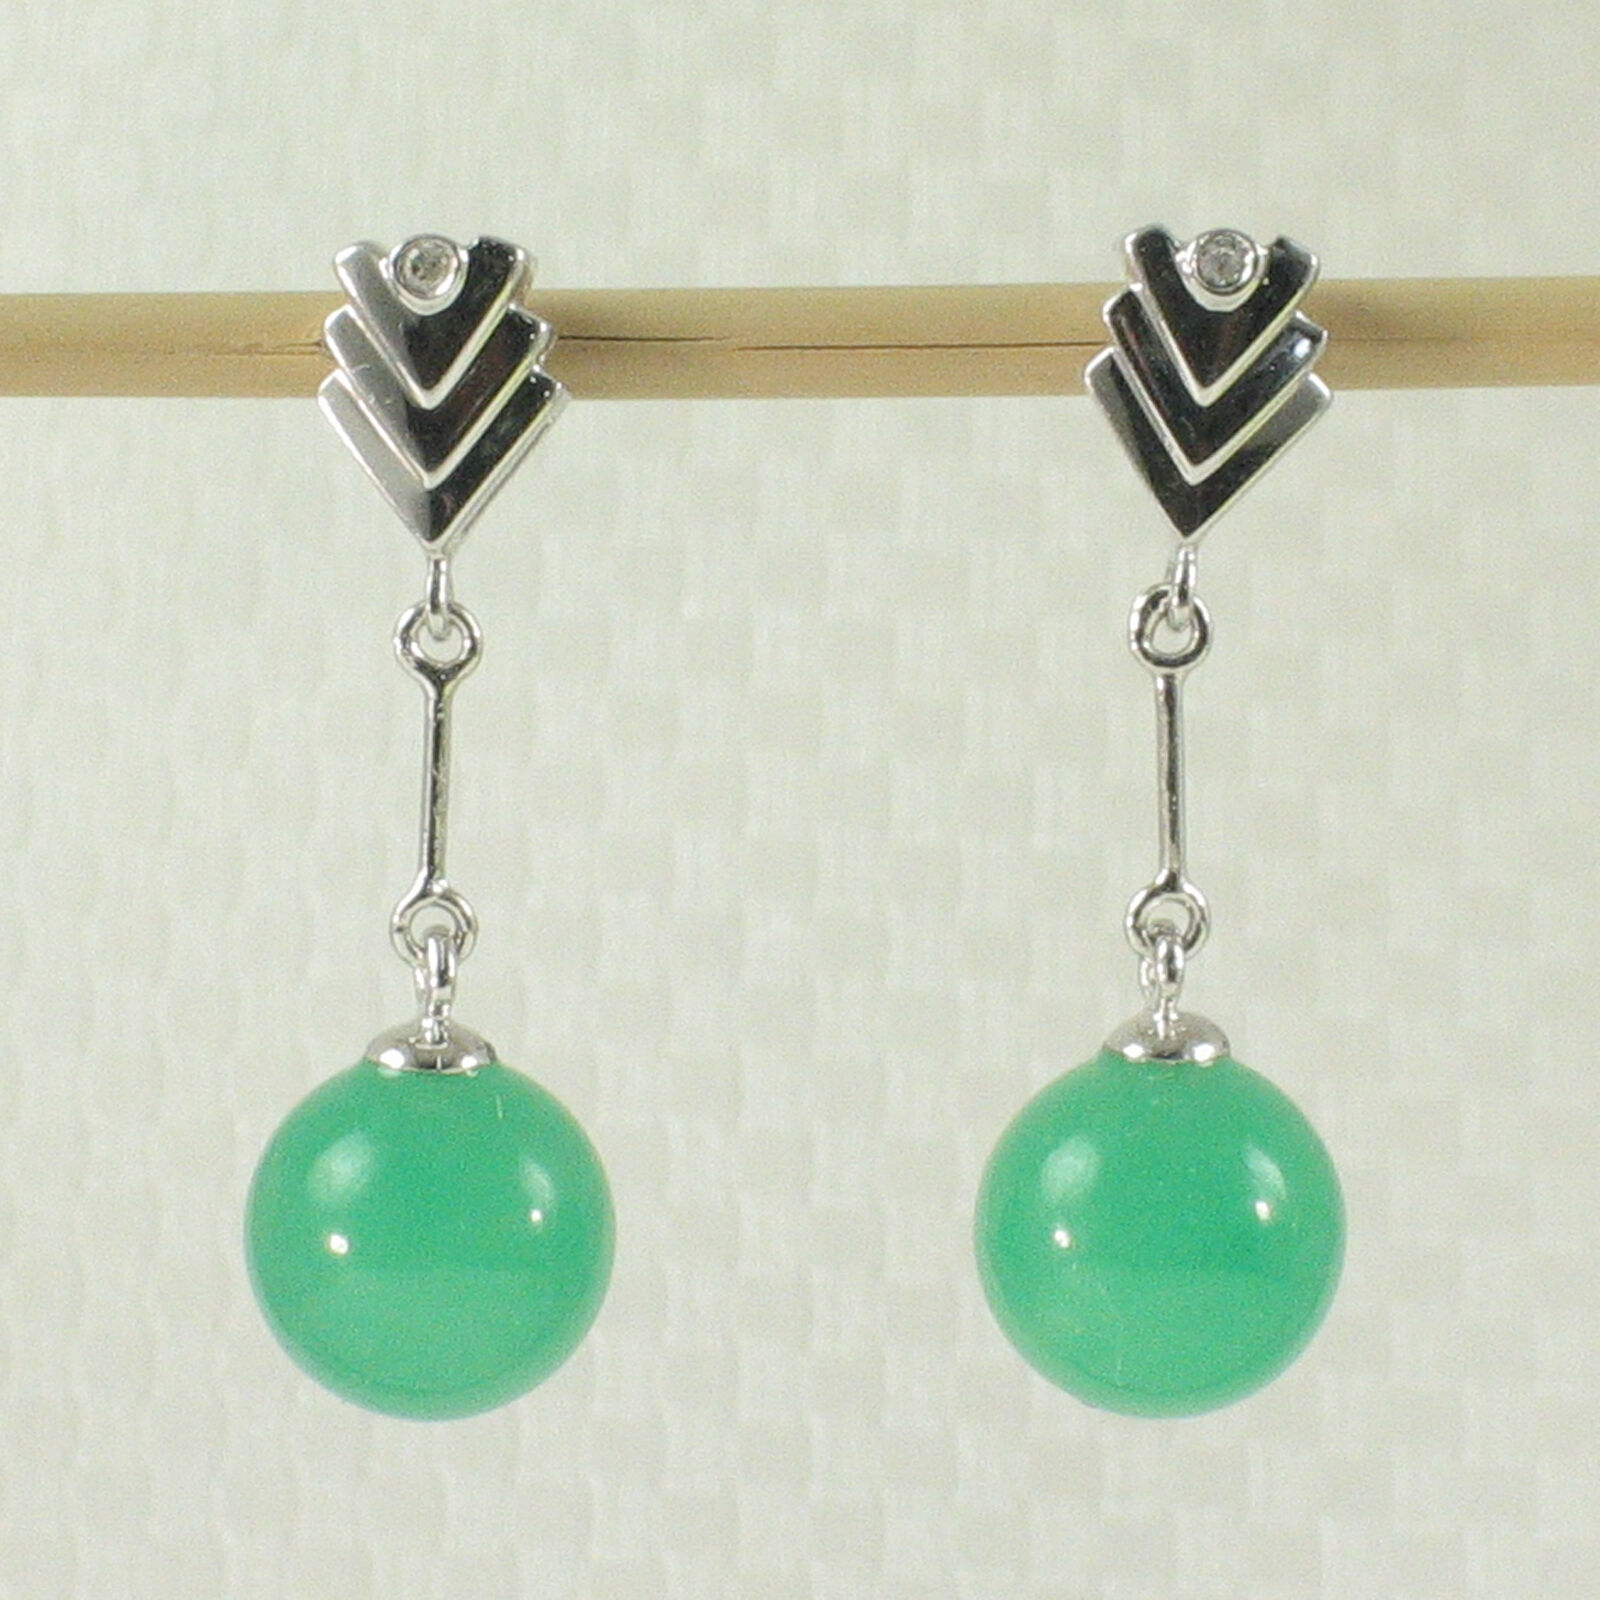 14k White Solid gold with Diamond & 8mm Beads Green Jade Dangle Earrings TPJ